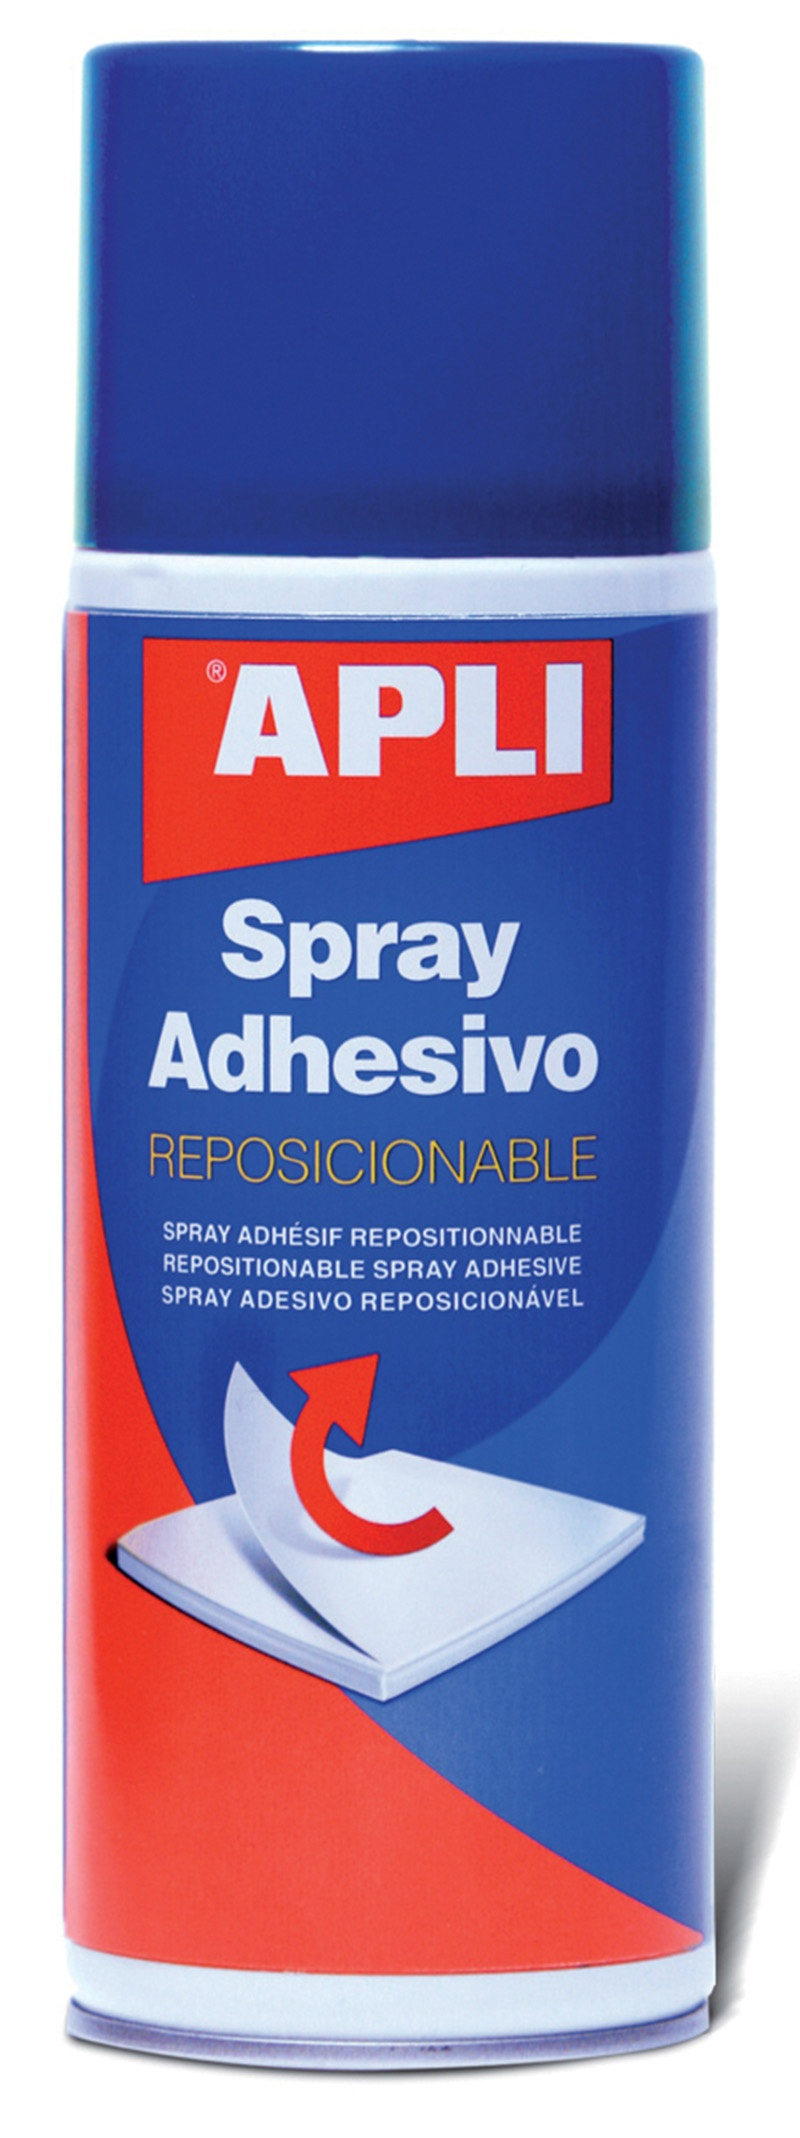 Spray Mount Adhesive Can 3M APLI, repositionable, 400ml